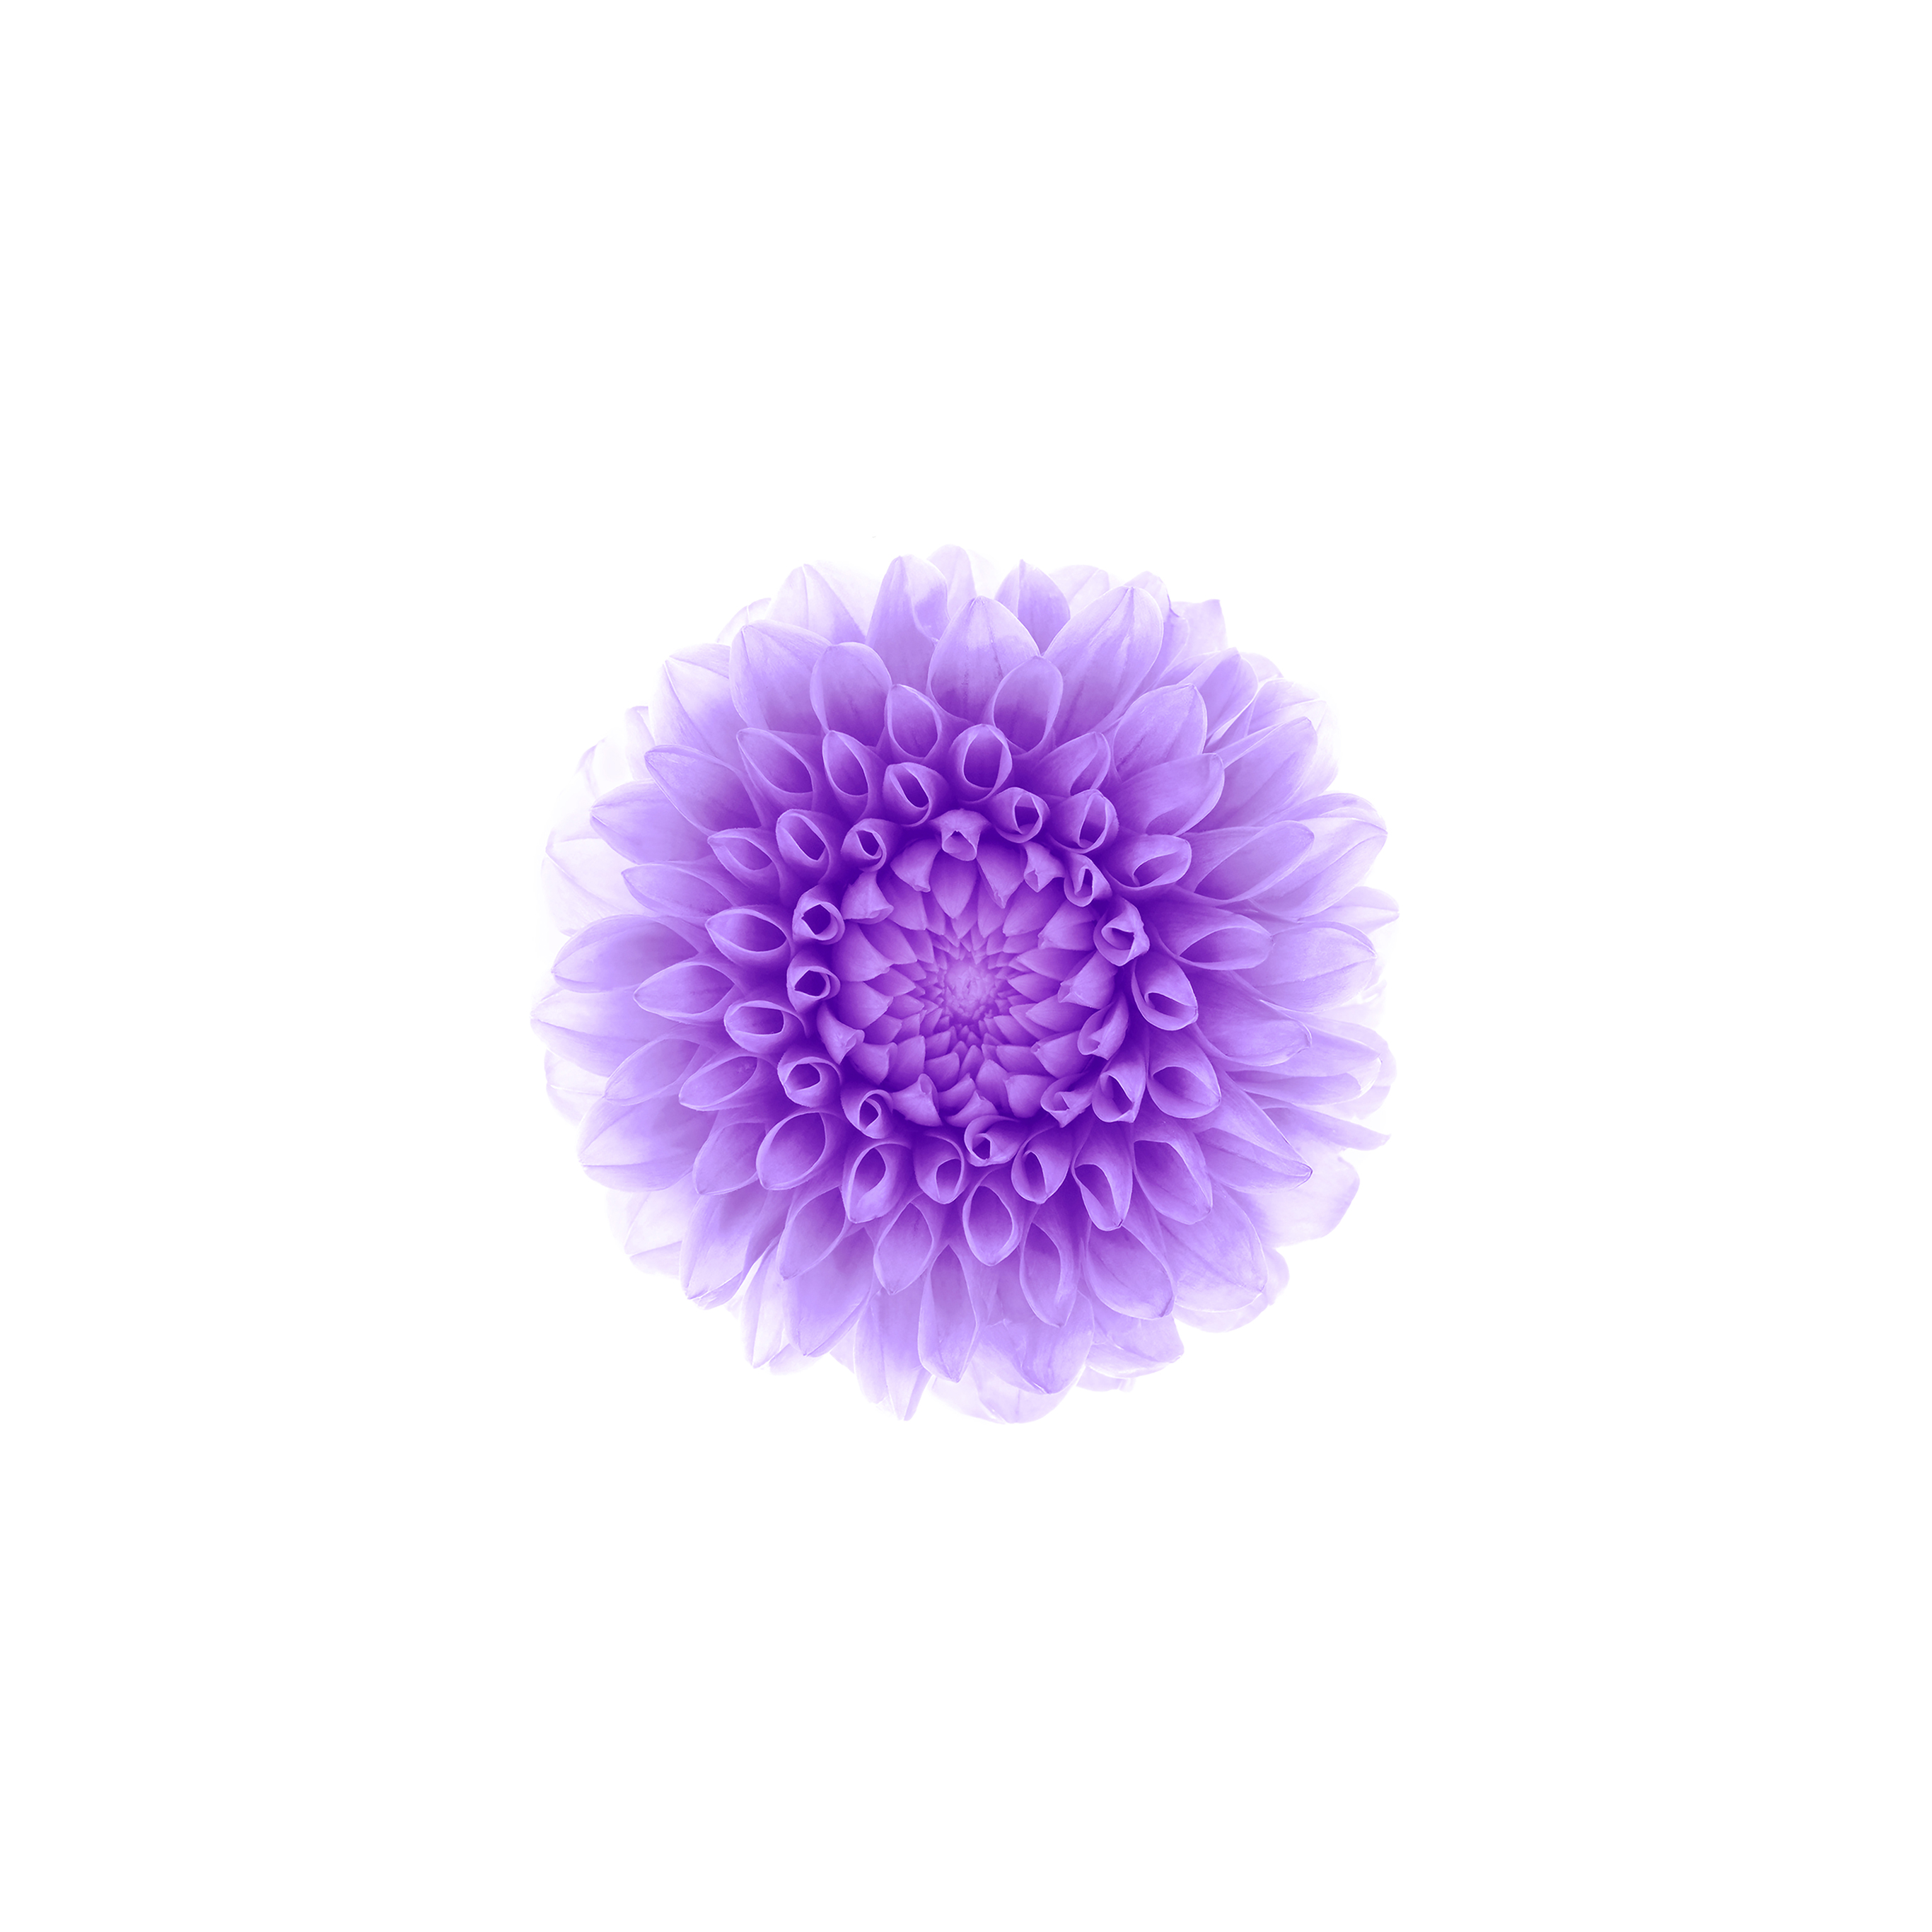 ac95-wallpaper-apple-iphone6-plus-ios8-flower-purple-wallpaper